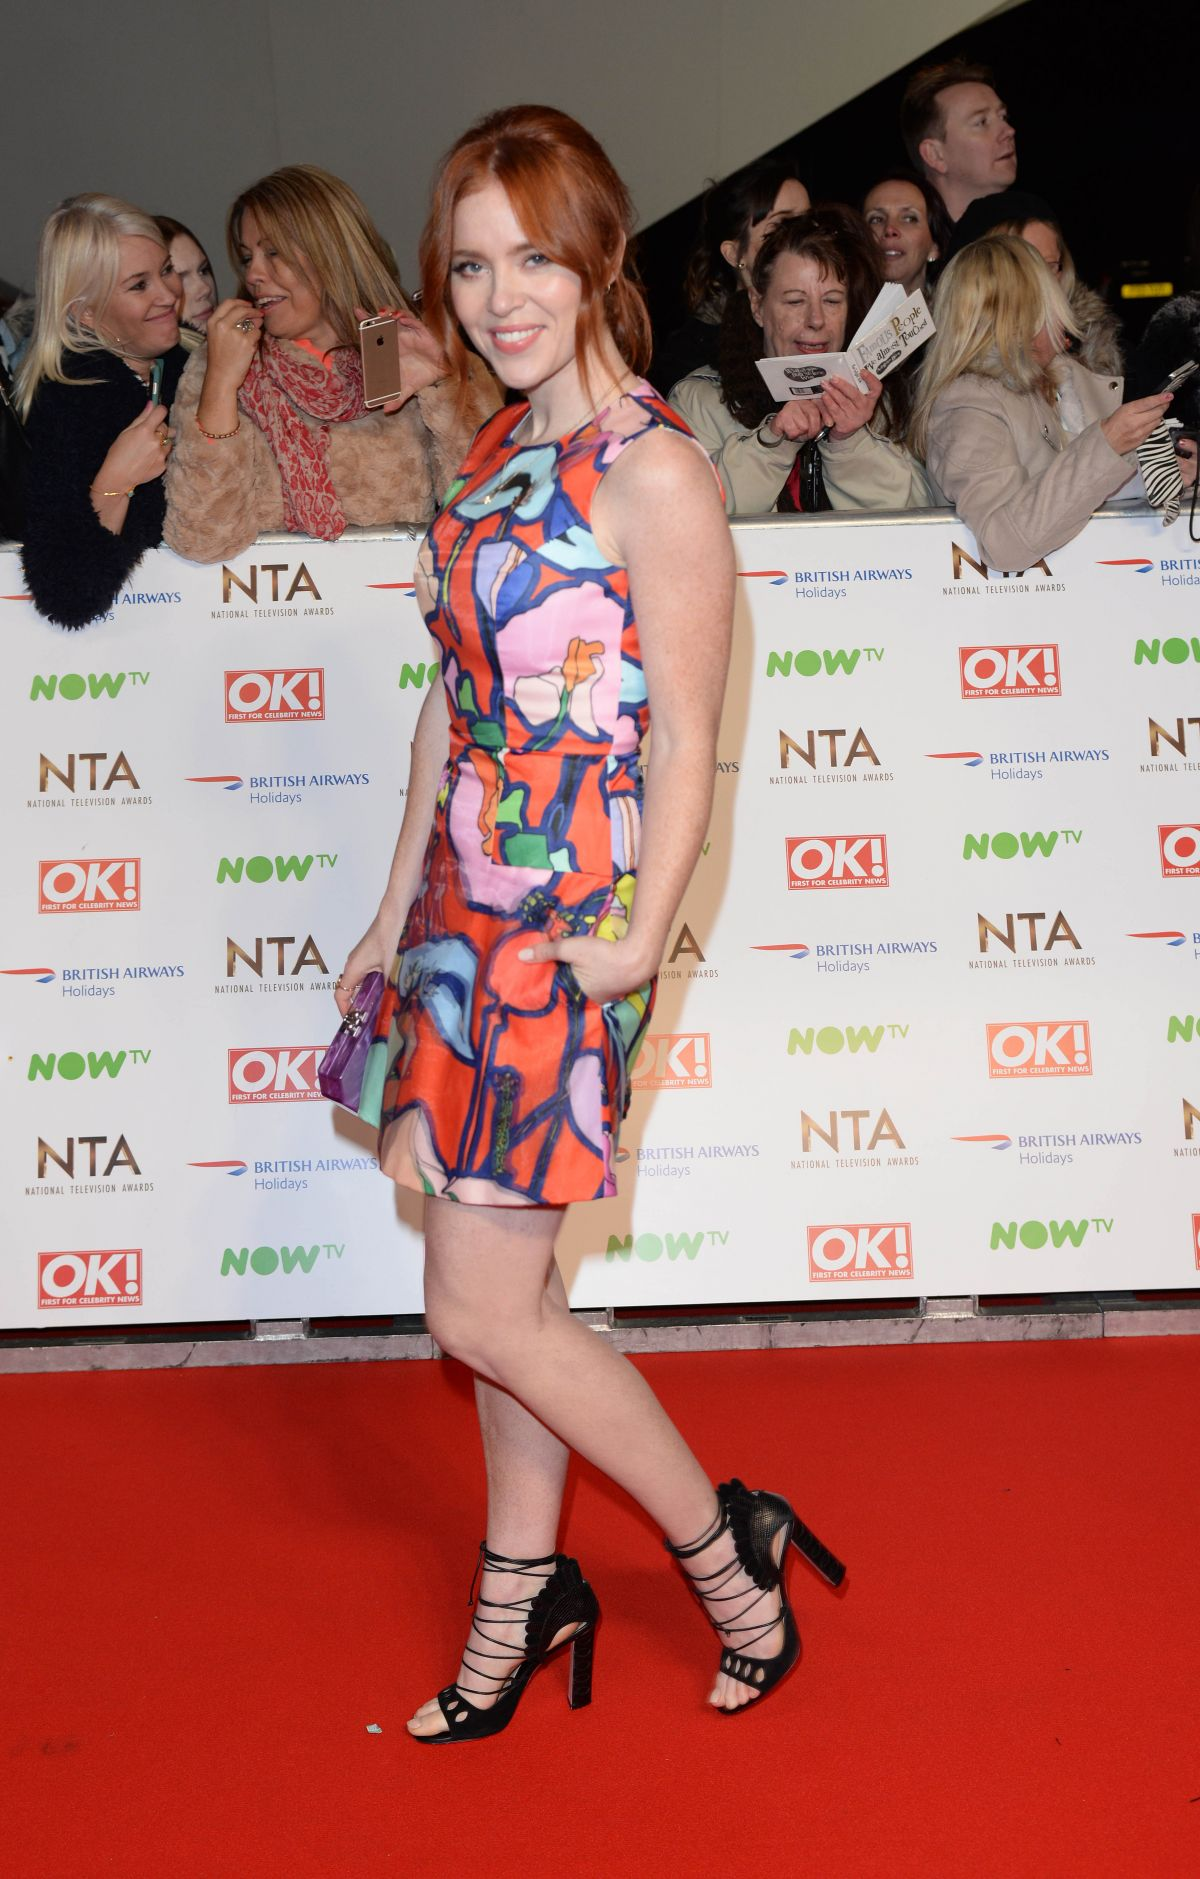 ANGELA SCANLON at 2016 National Television Awards in London 01/20/2016